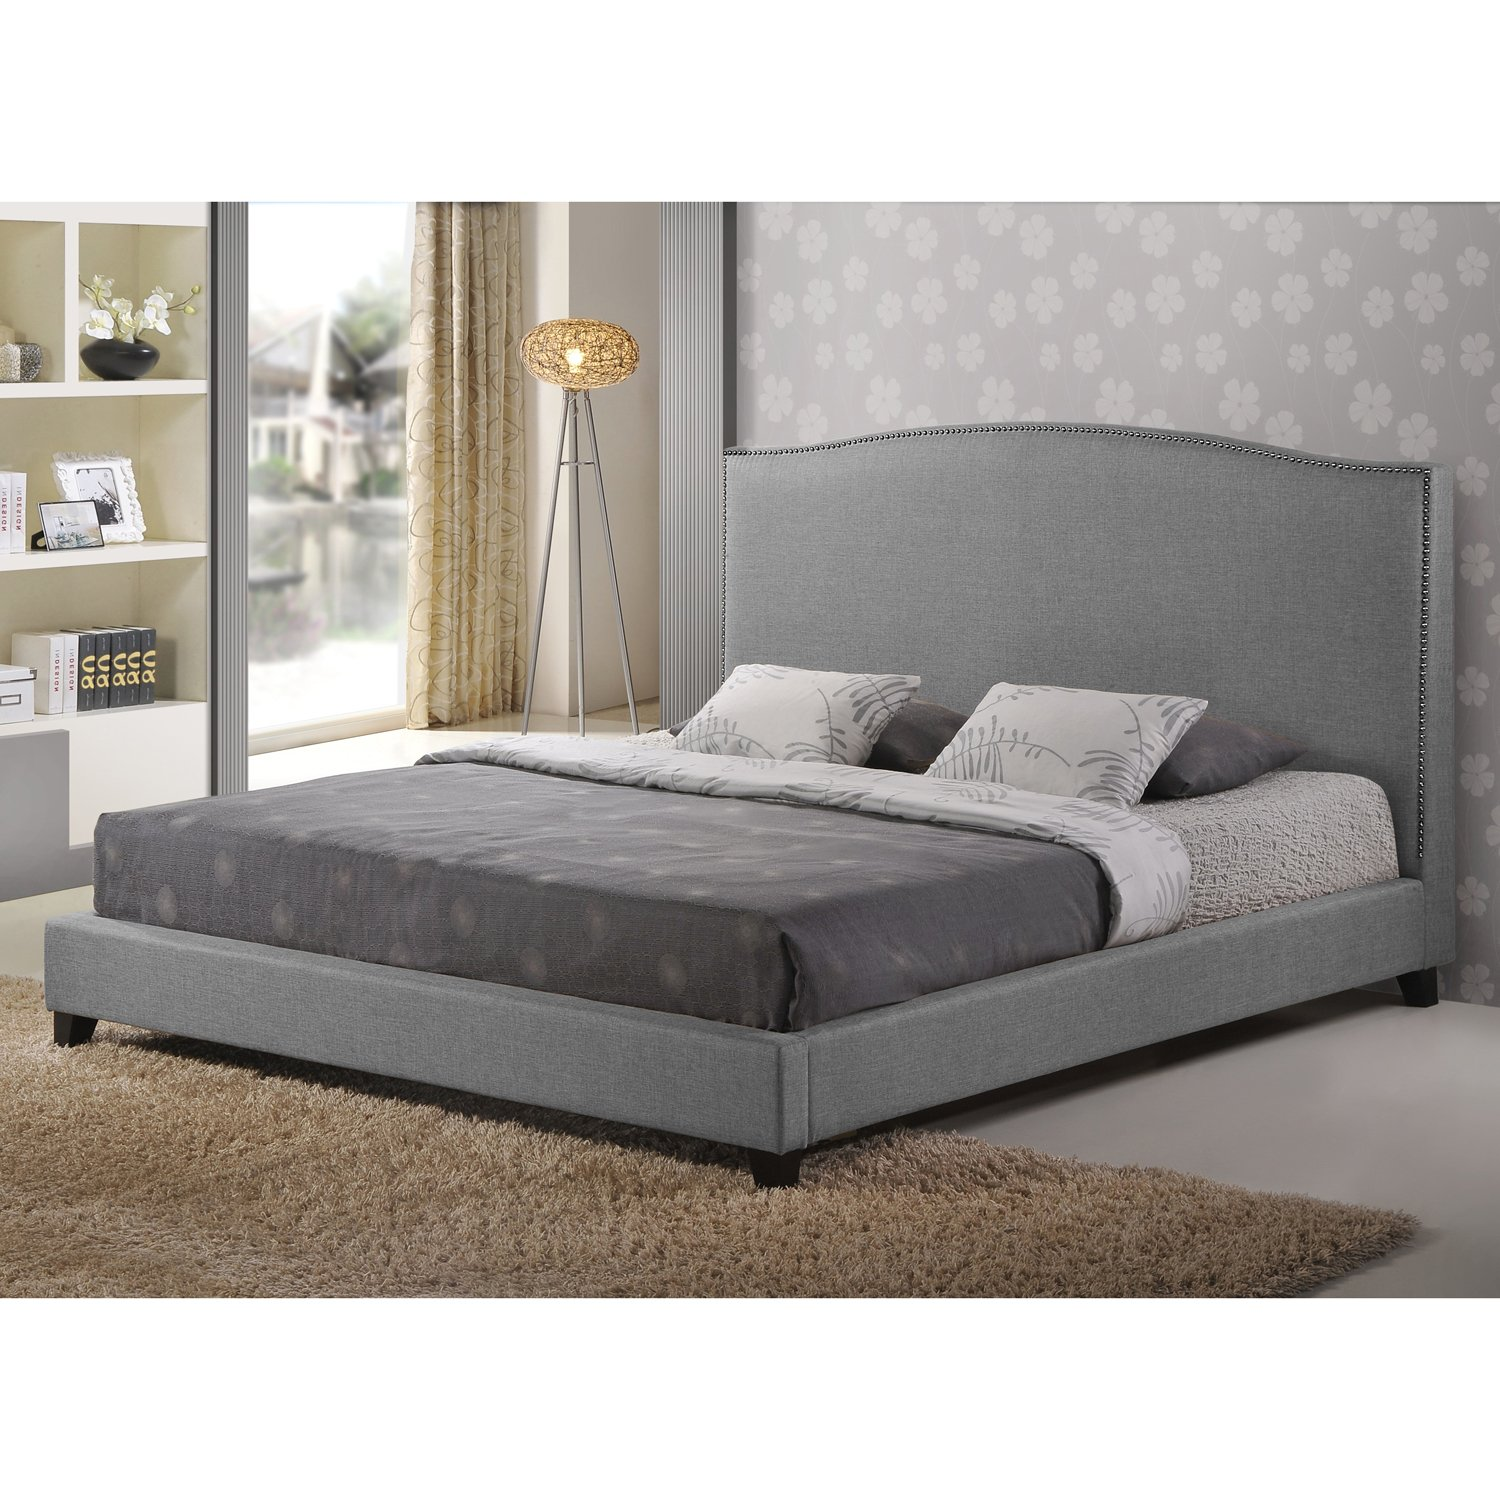 Pictures of platform beds - Amazon Com Baxton Studio Aisling Fabric Platform Bed King Gray Kitchen Dining